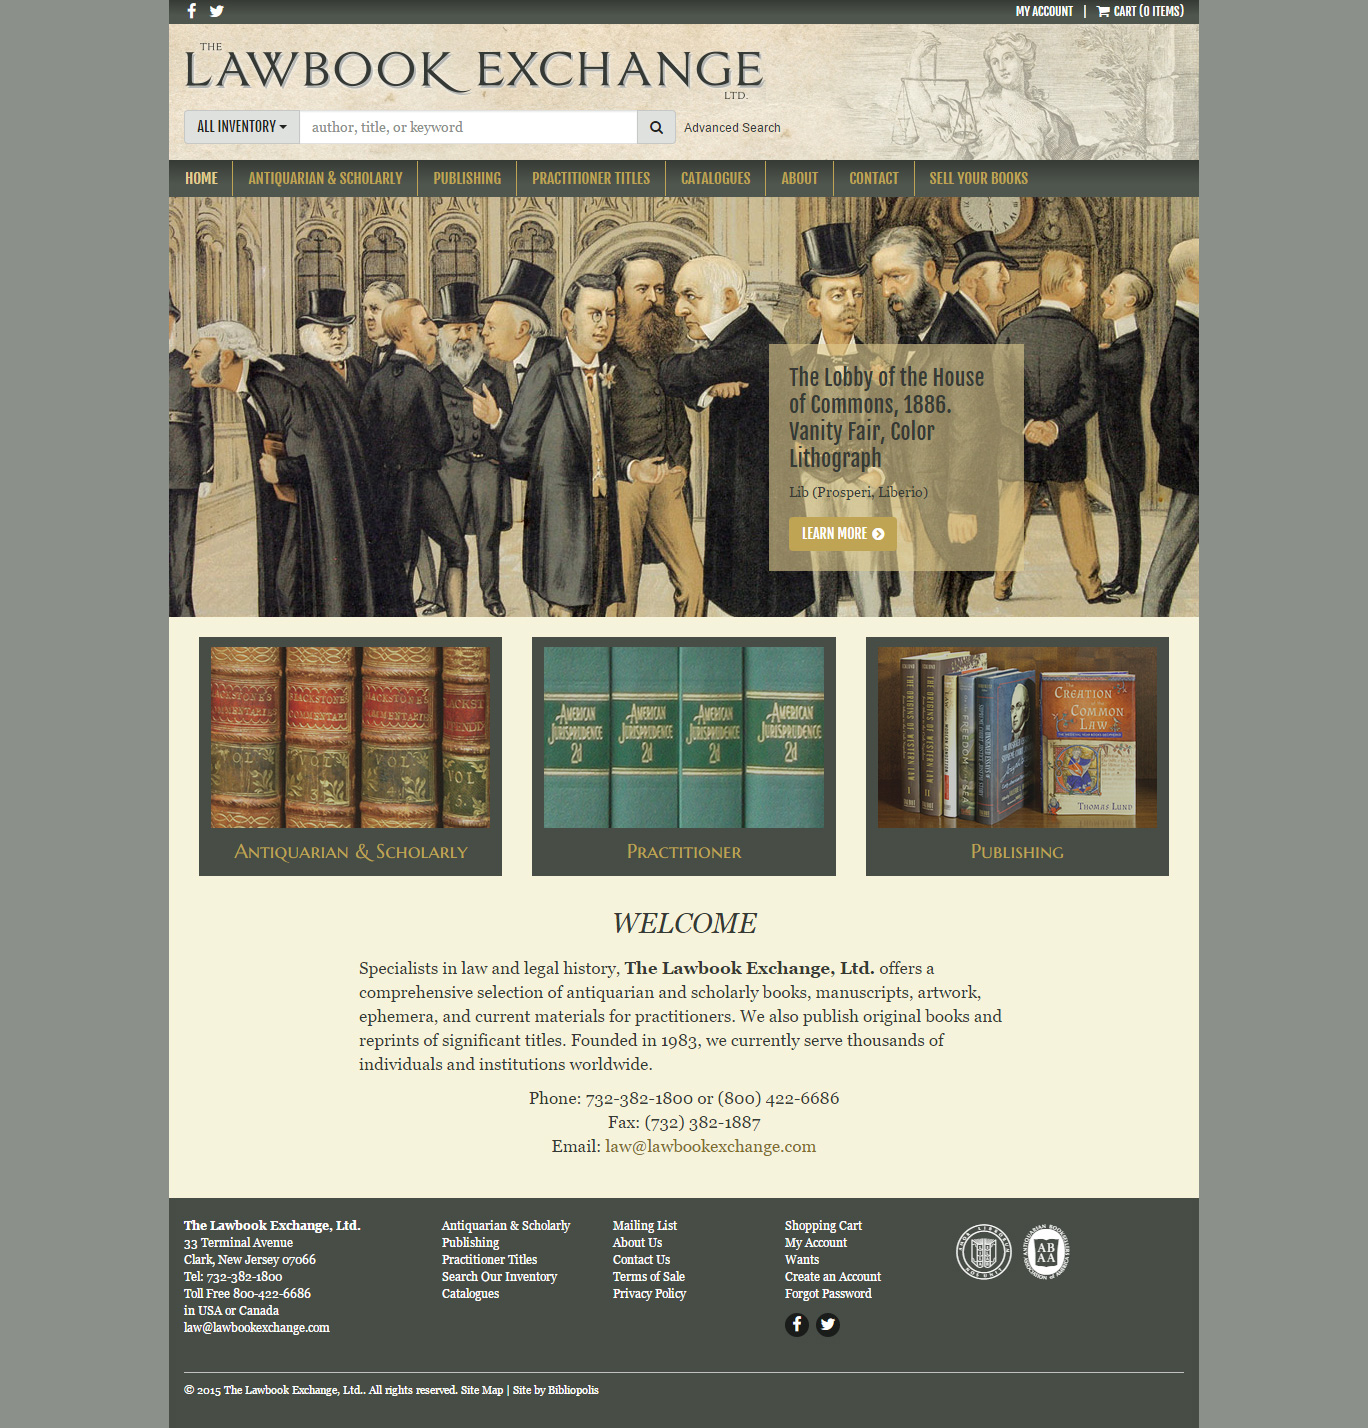 The Lawbook Exchange